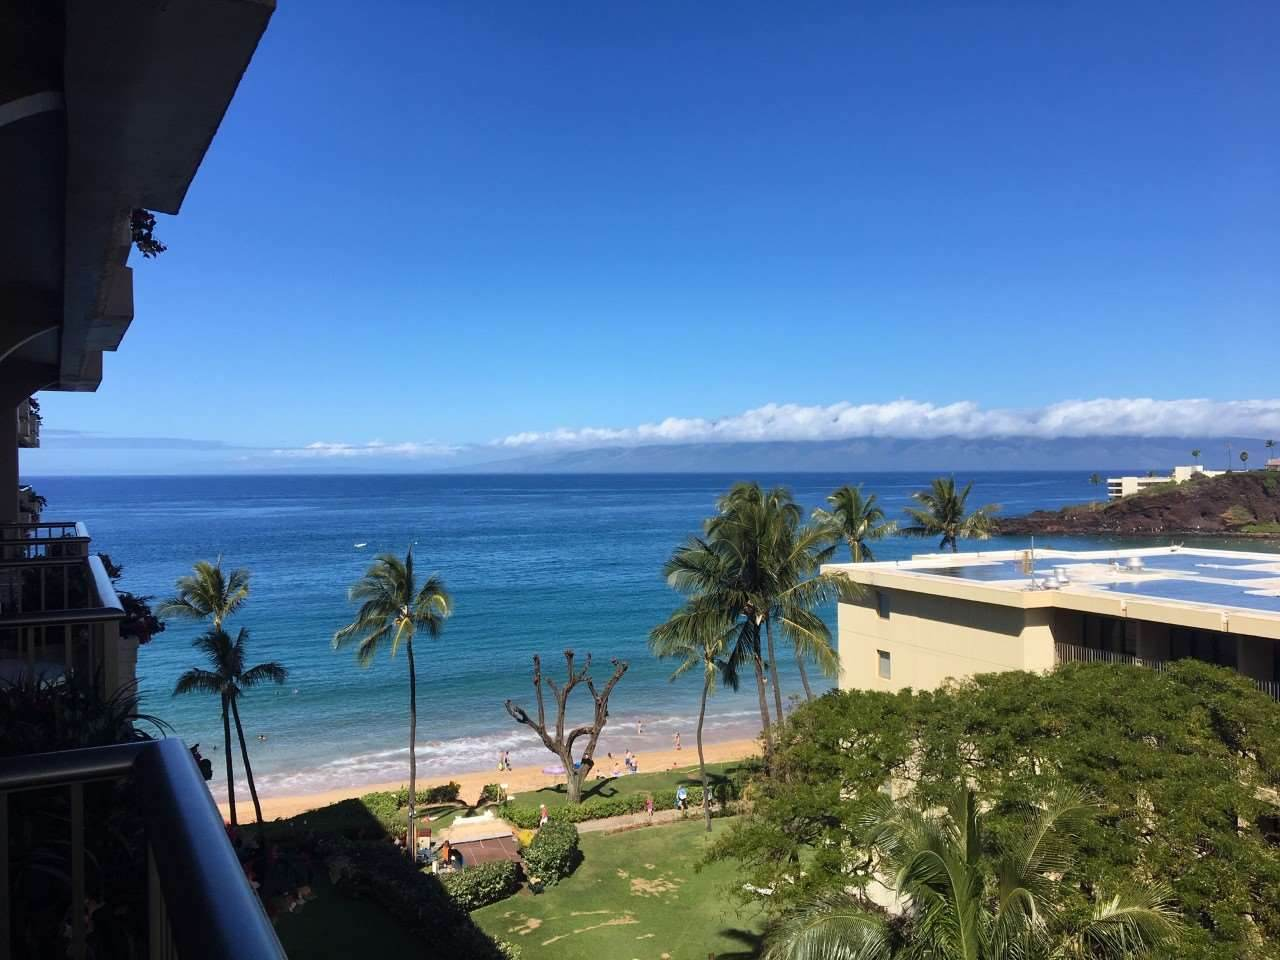 2481 Kaanapali Pkwy - Photo 1